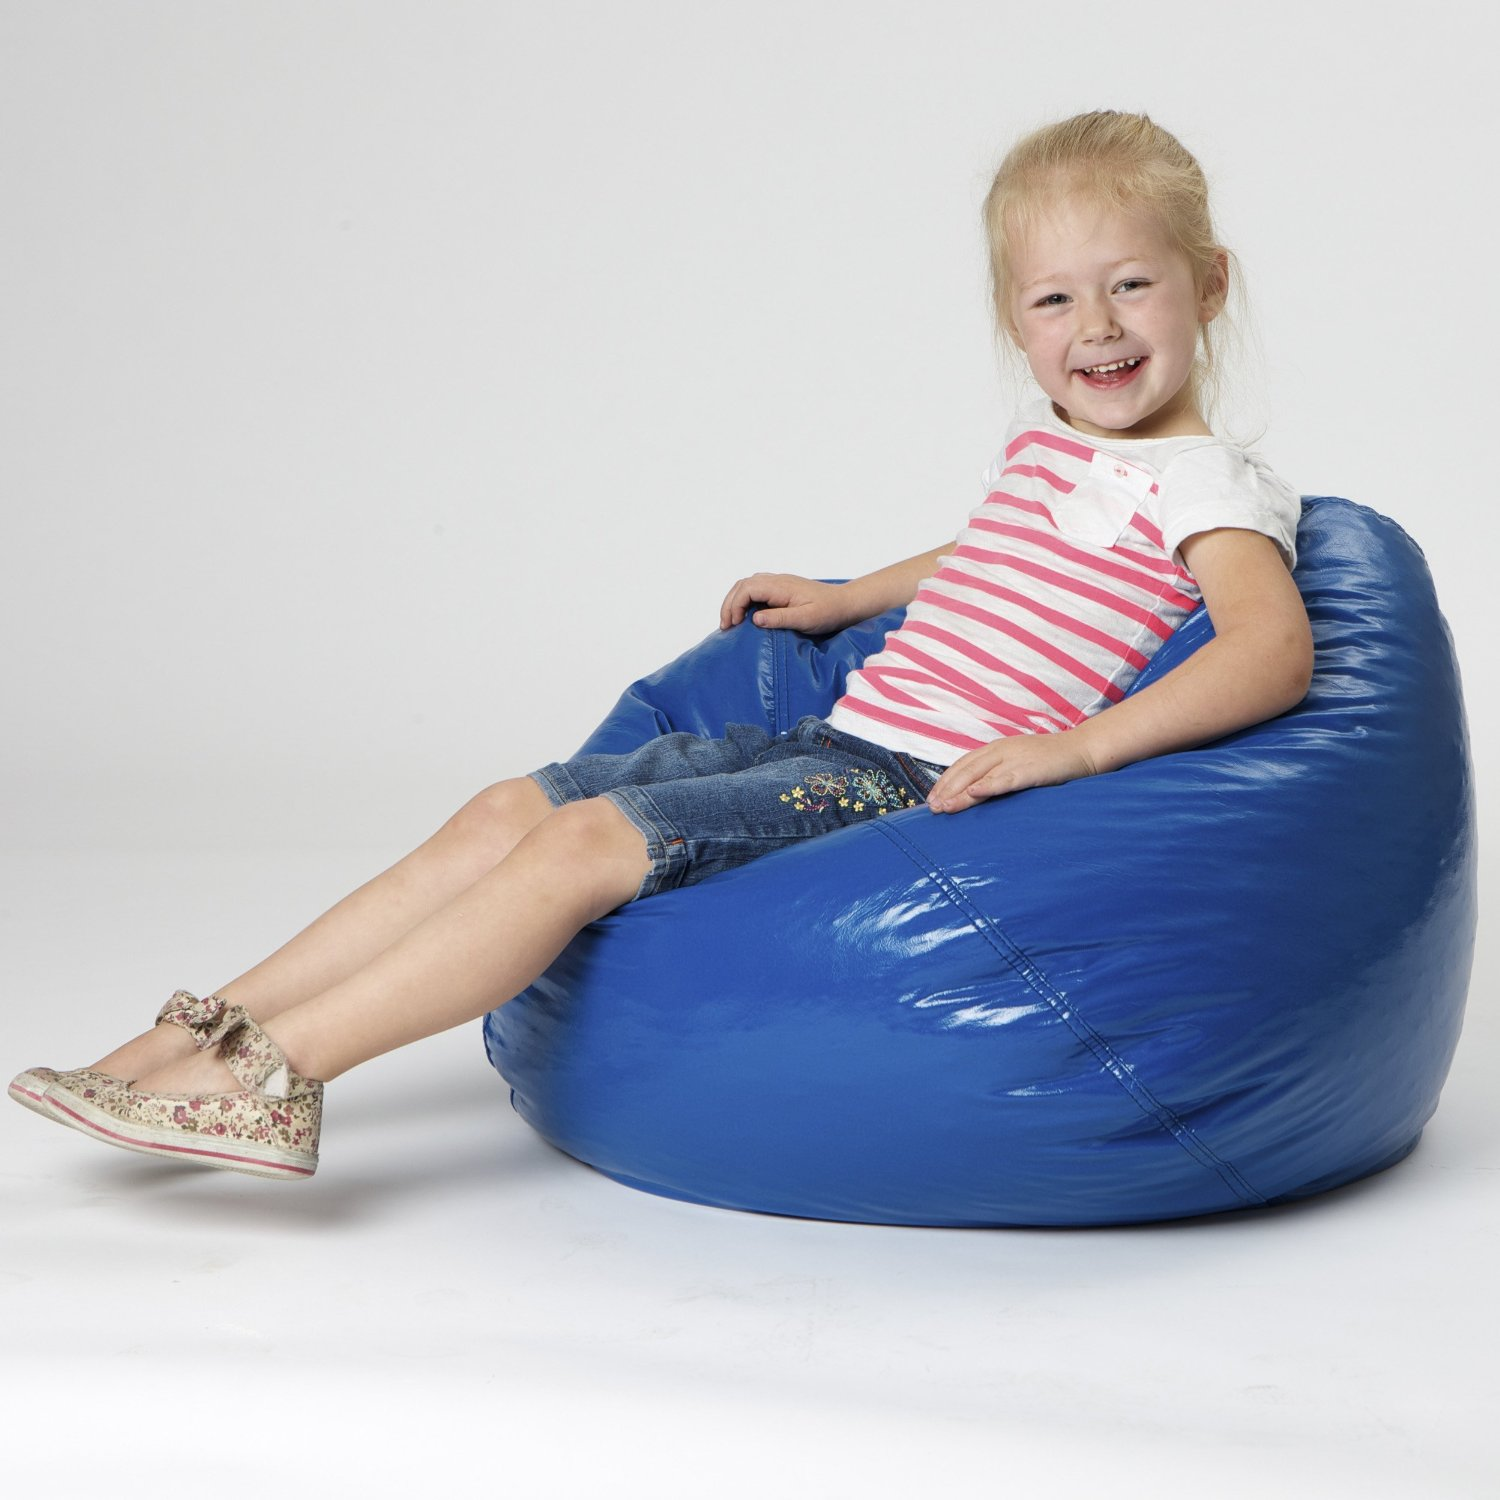 Top 10 Best Kids Bean Bags In 2019 Reviews